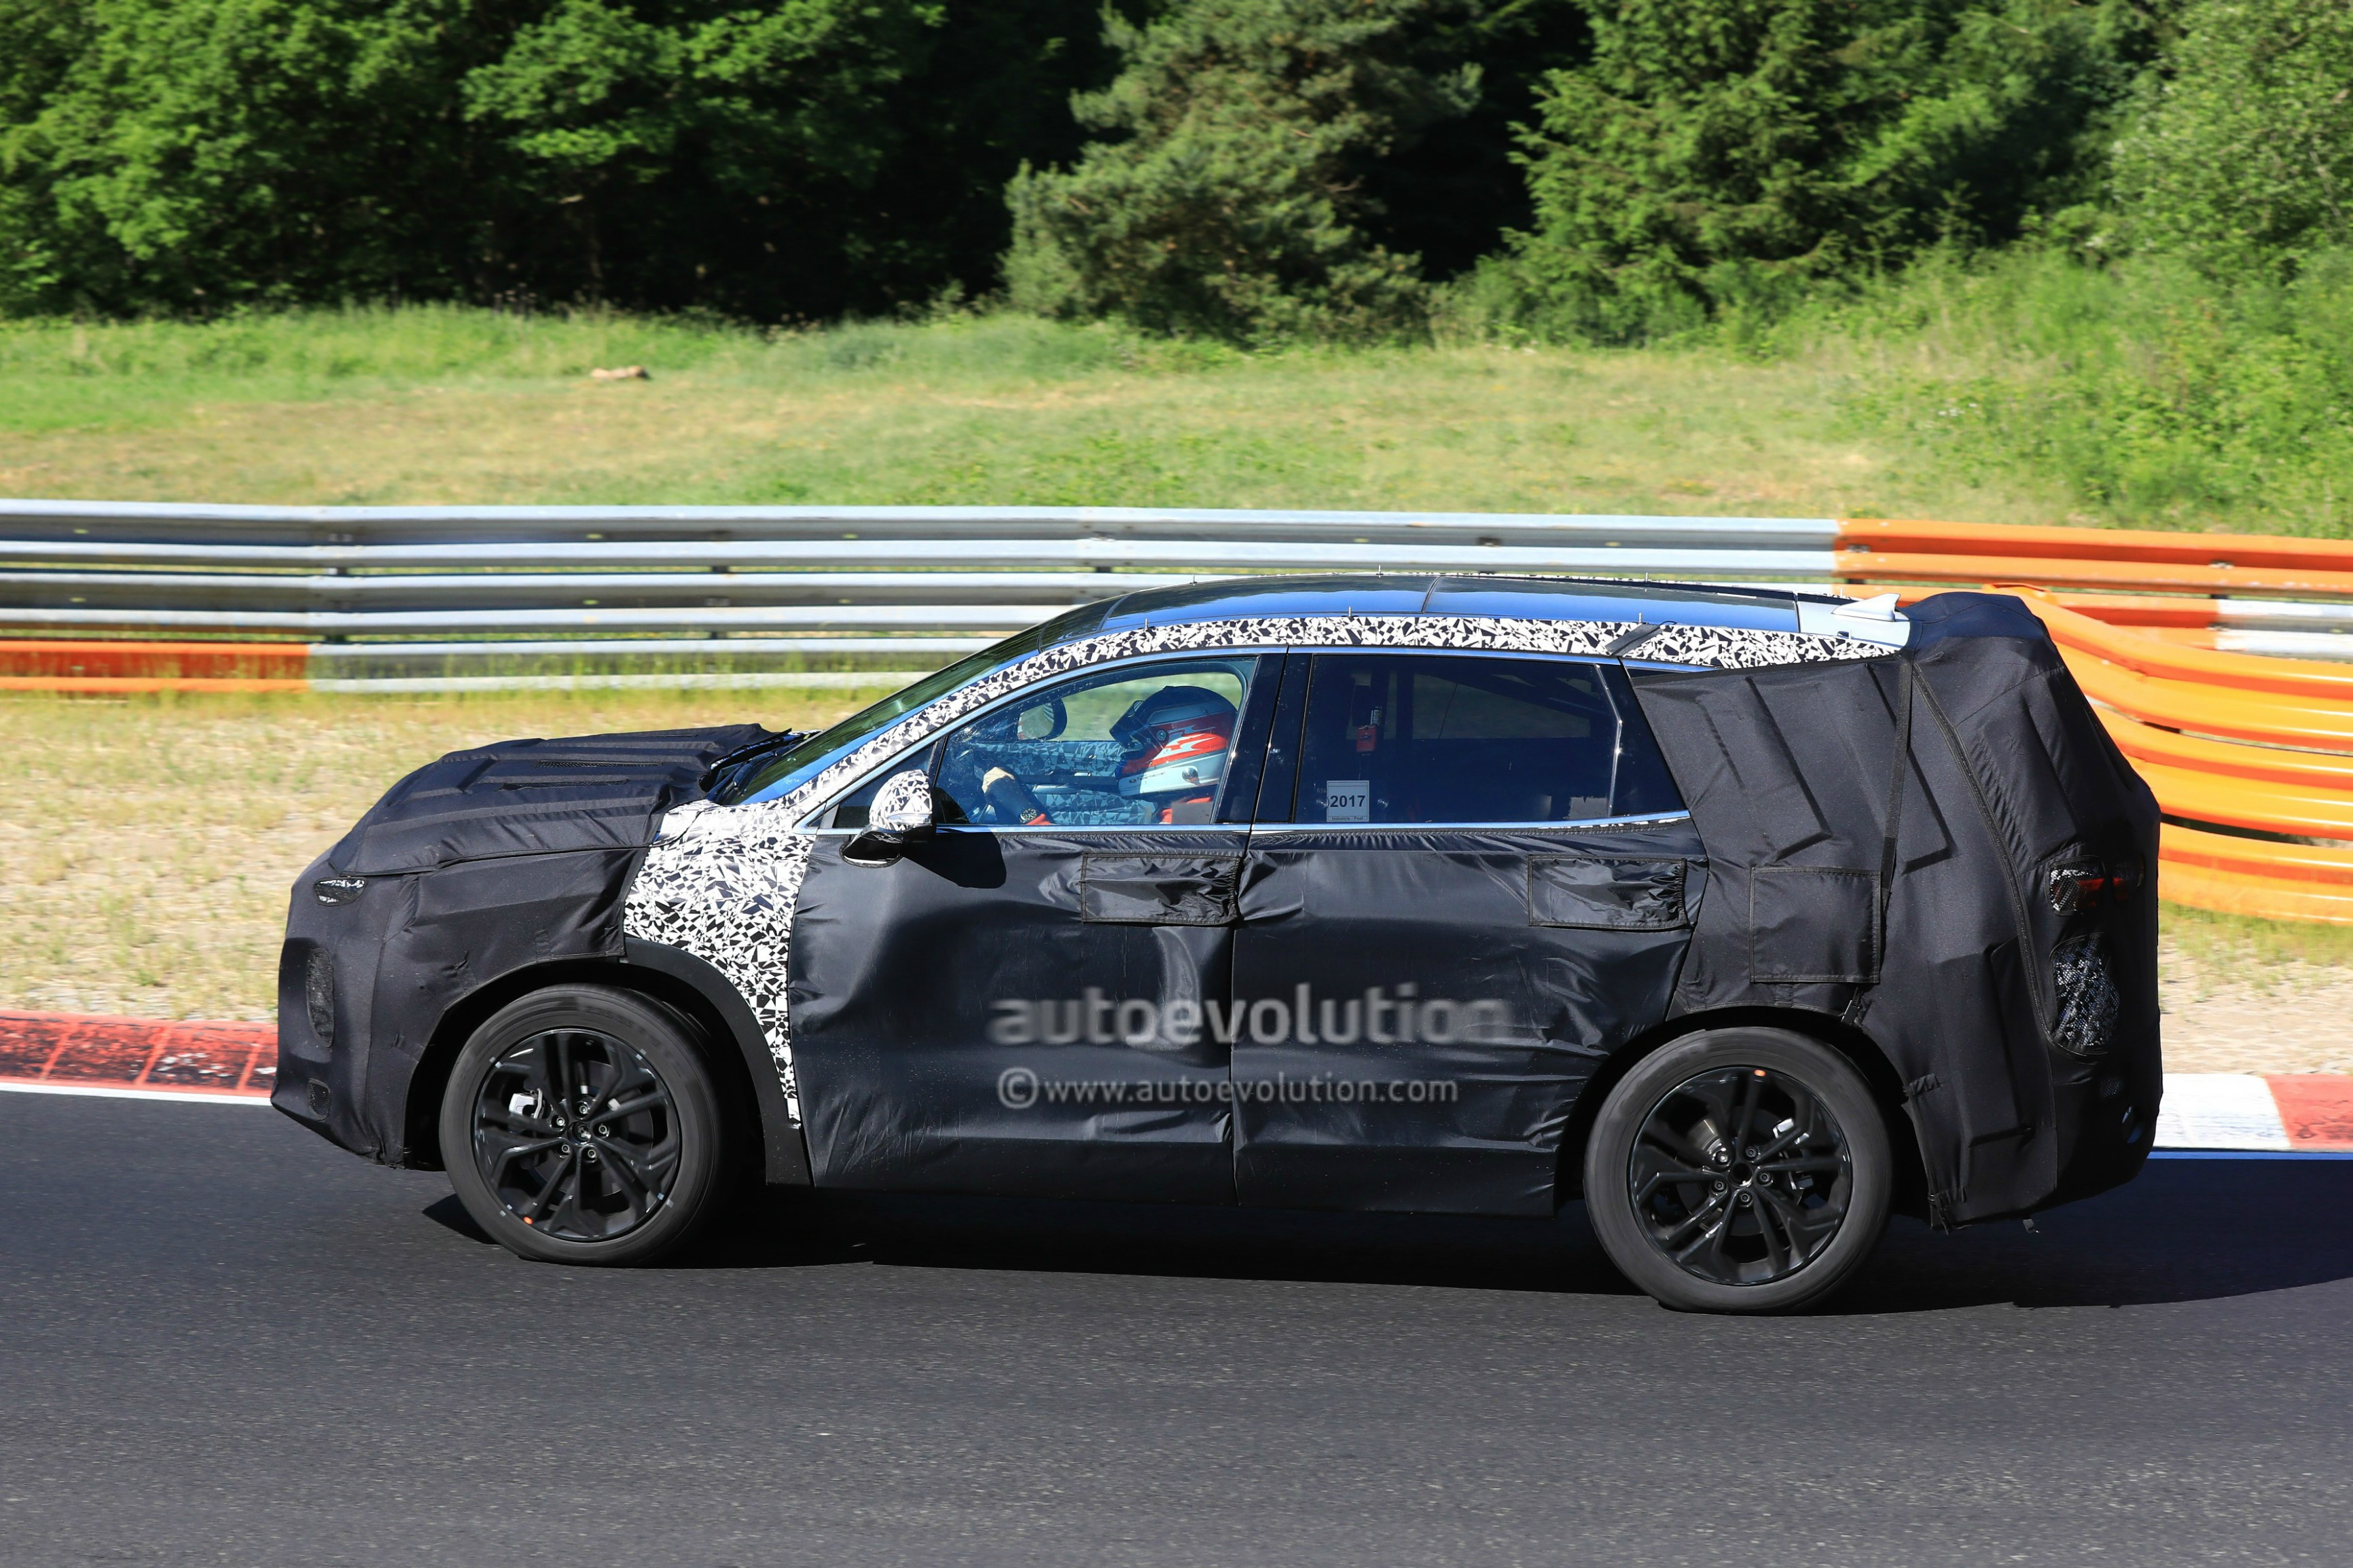 2019 Hyundai Santa Fe Takes On The Karussell In Newest Spy Video